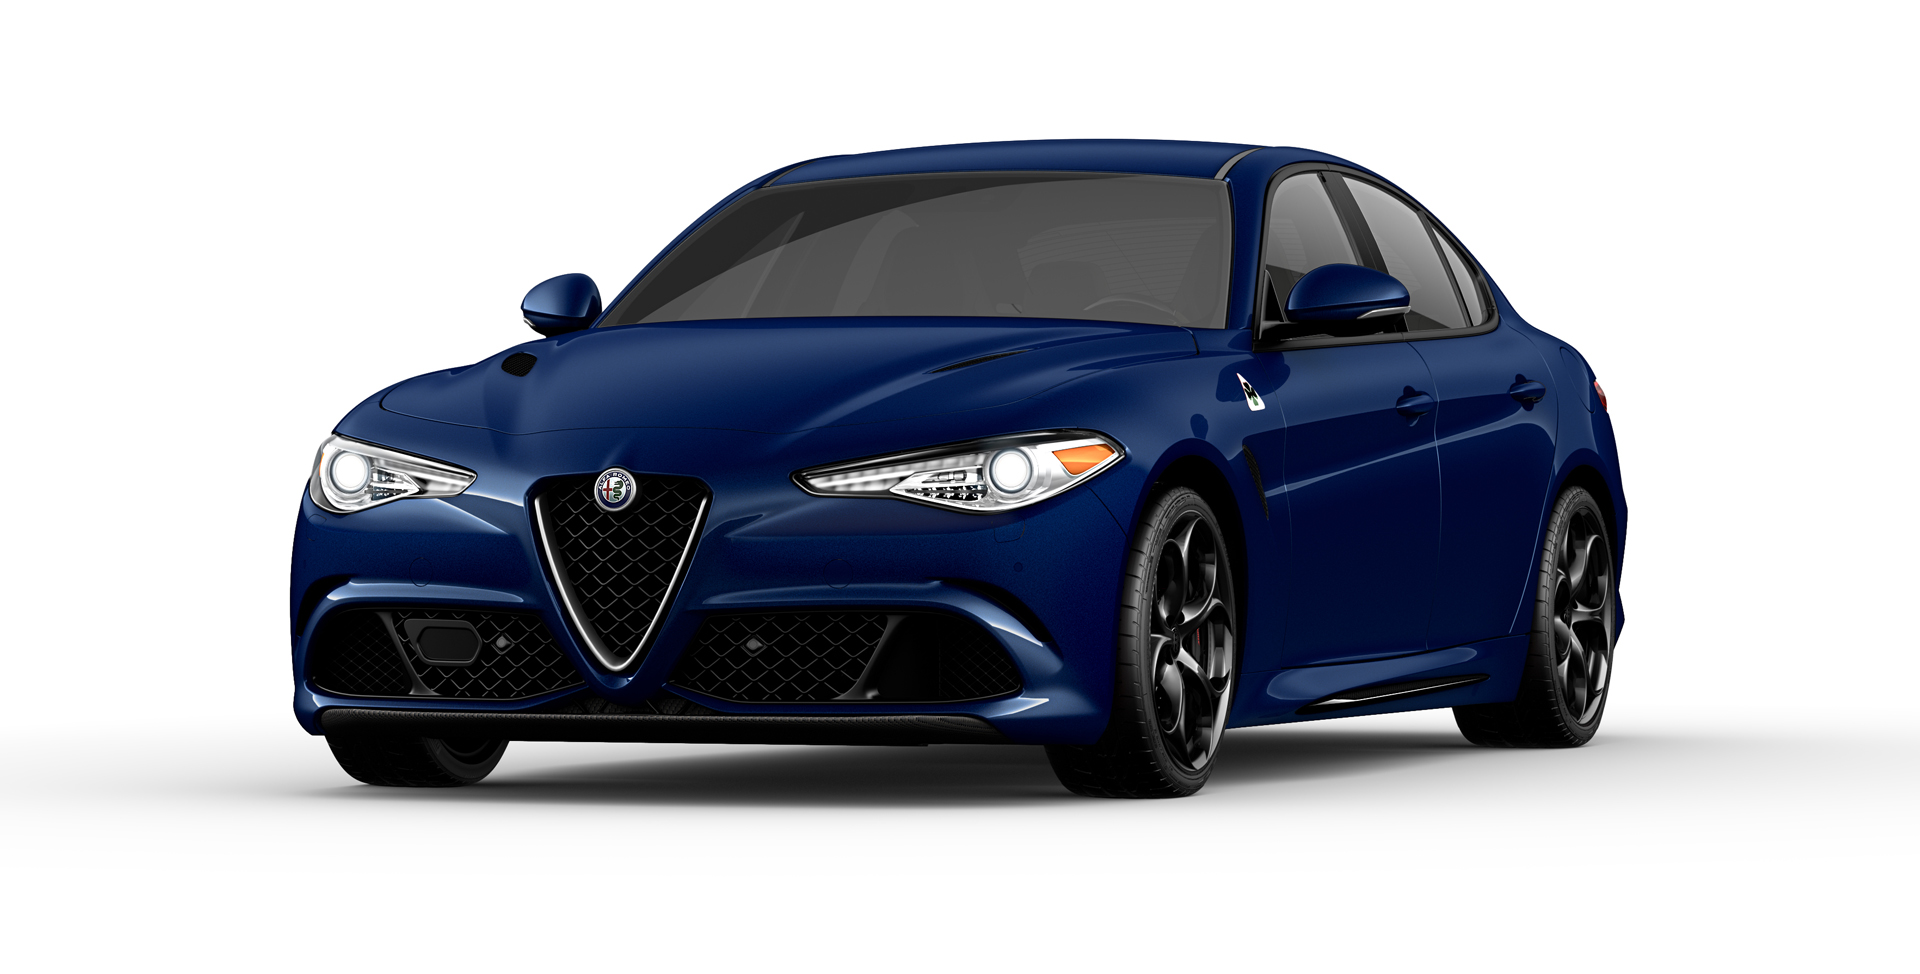 Alfa Romeo Giulia Car Dealership in Miami, FL - The Collection